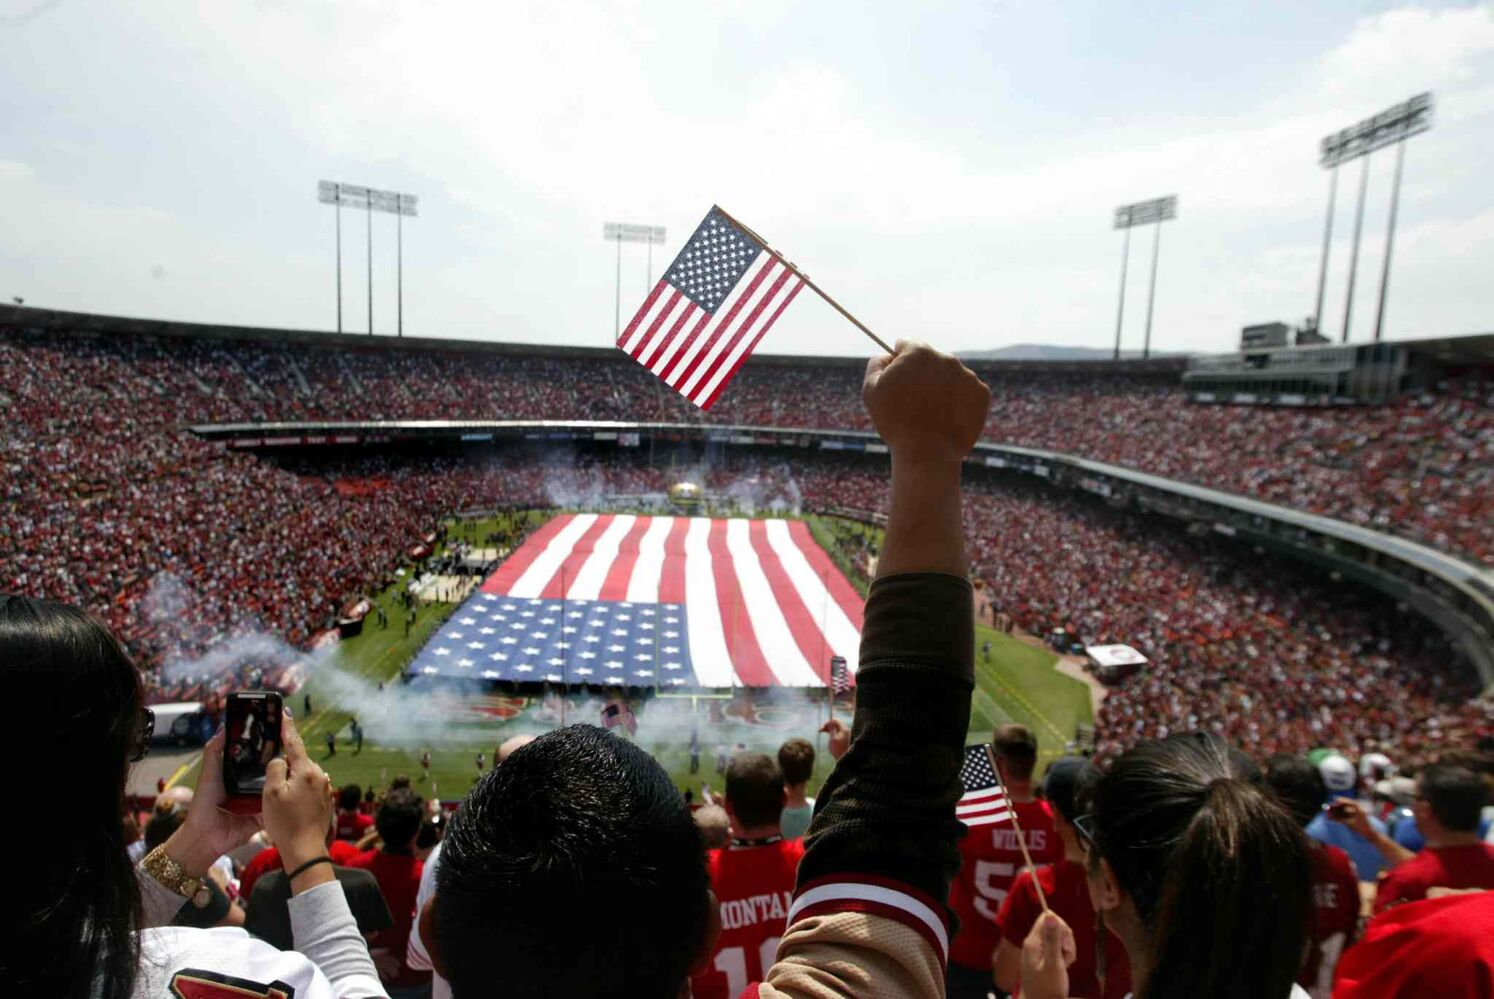 An American flag unfurls on the field during to commemorate the 10th anniversary of the 9/11 terrorist attacks prior to the NFL season home-opener between the San Francisco 49ers and the Seattle Seahawks on Sunday, September 11, 2011.